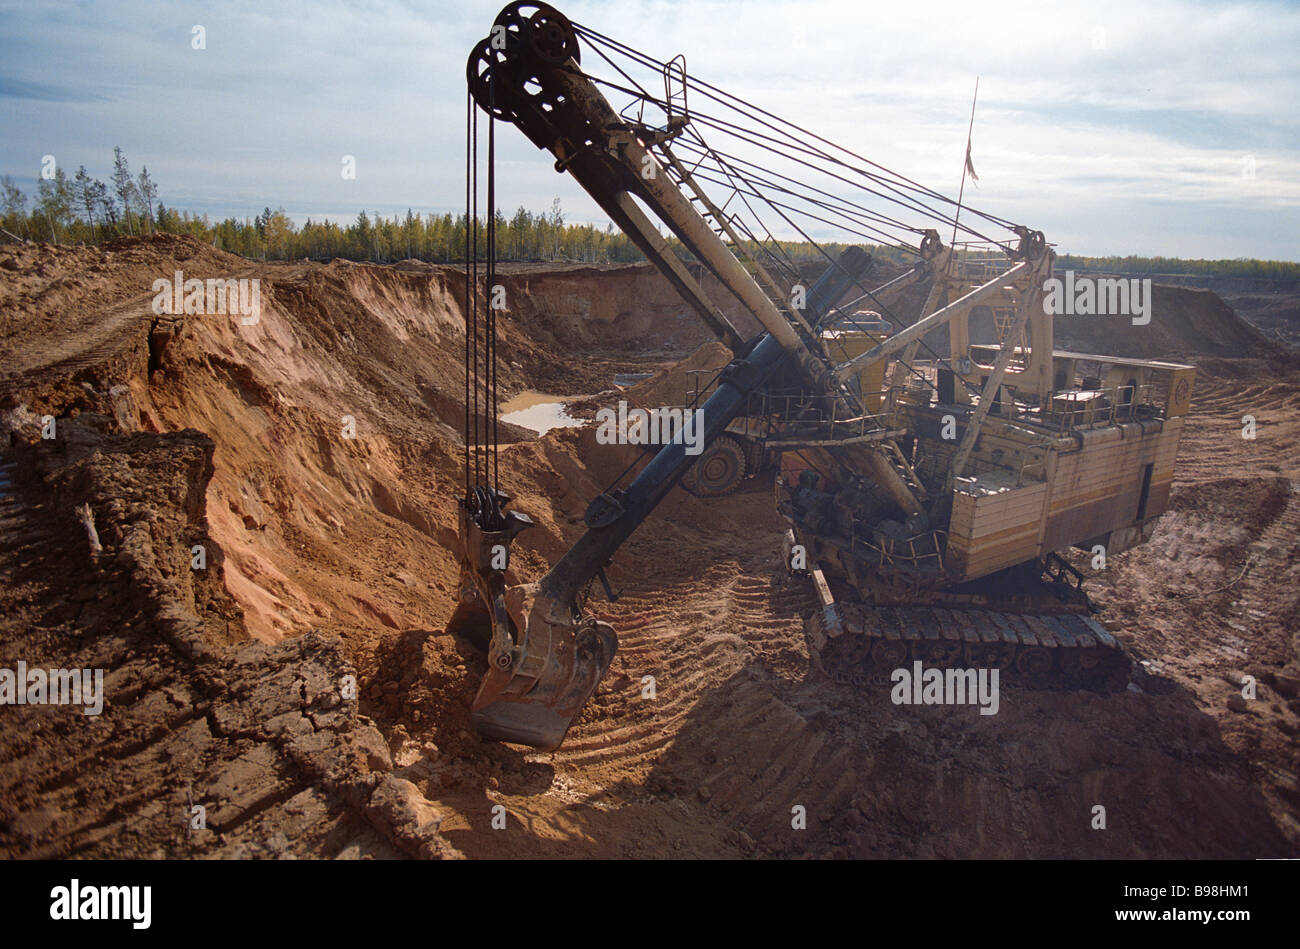 A digger excavating gold ore A digger excavating gold ore at the Bokovoye gold field of OOO Aldanzoloto Nizhny Kuranakh - Stock Image